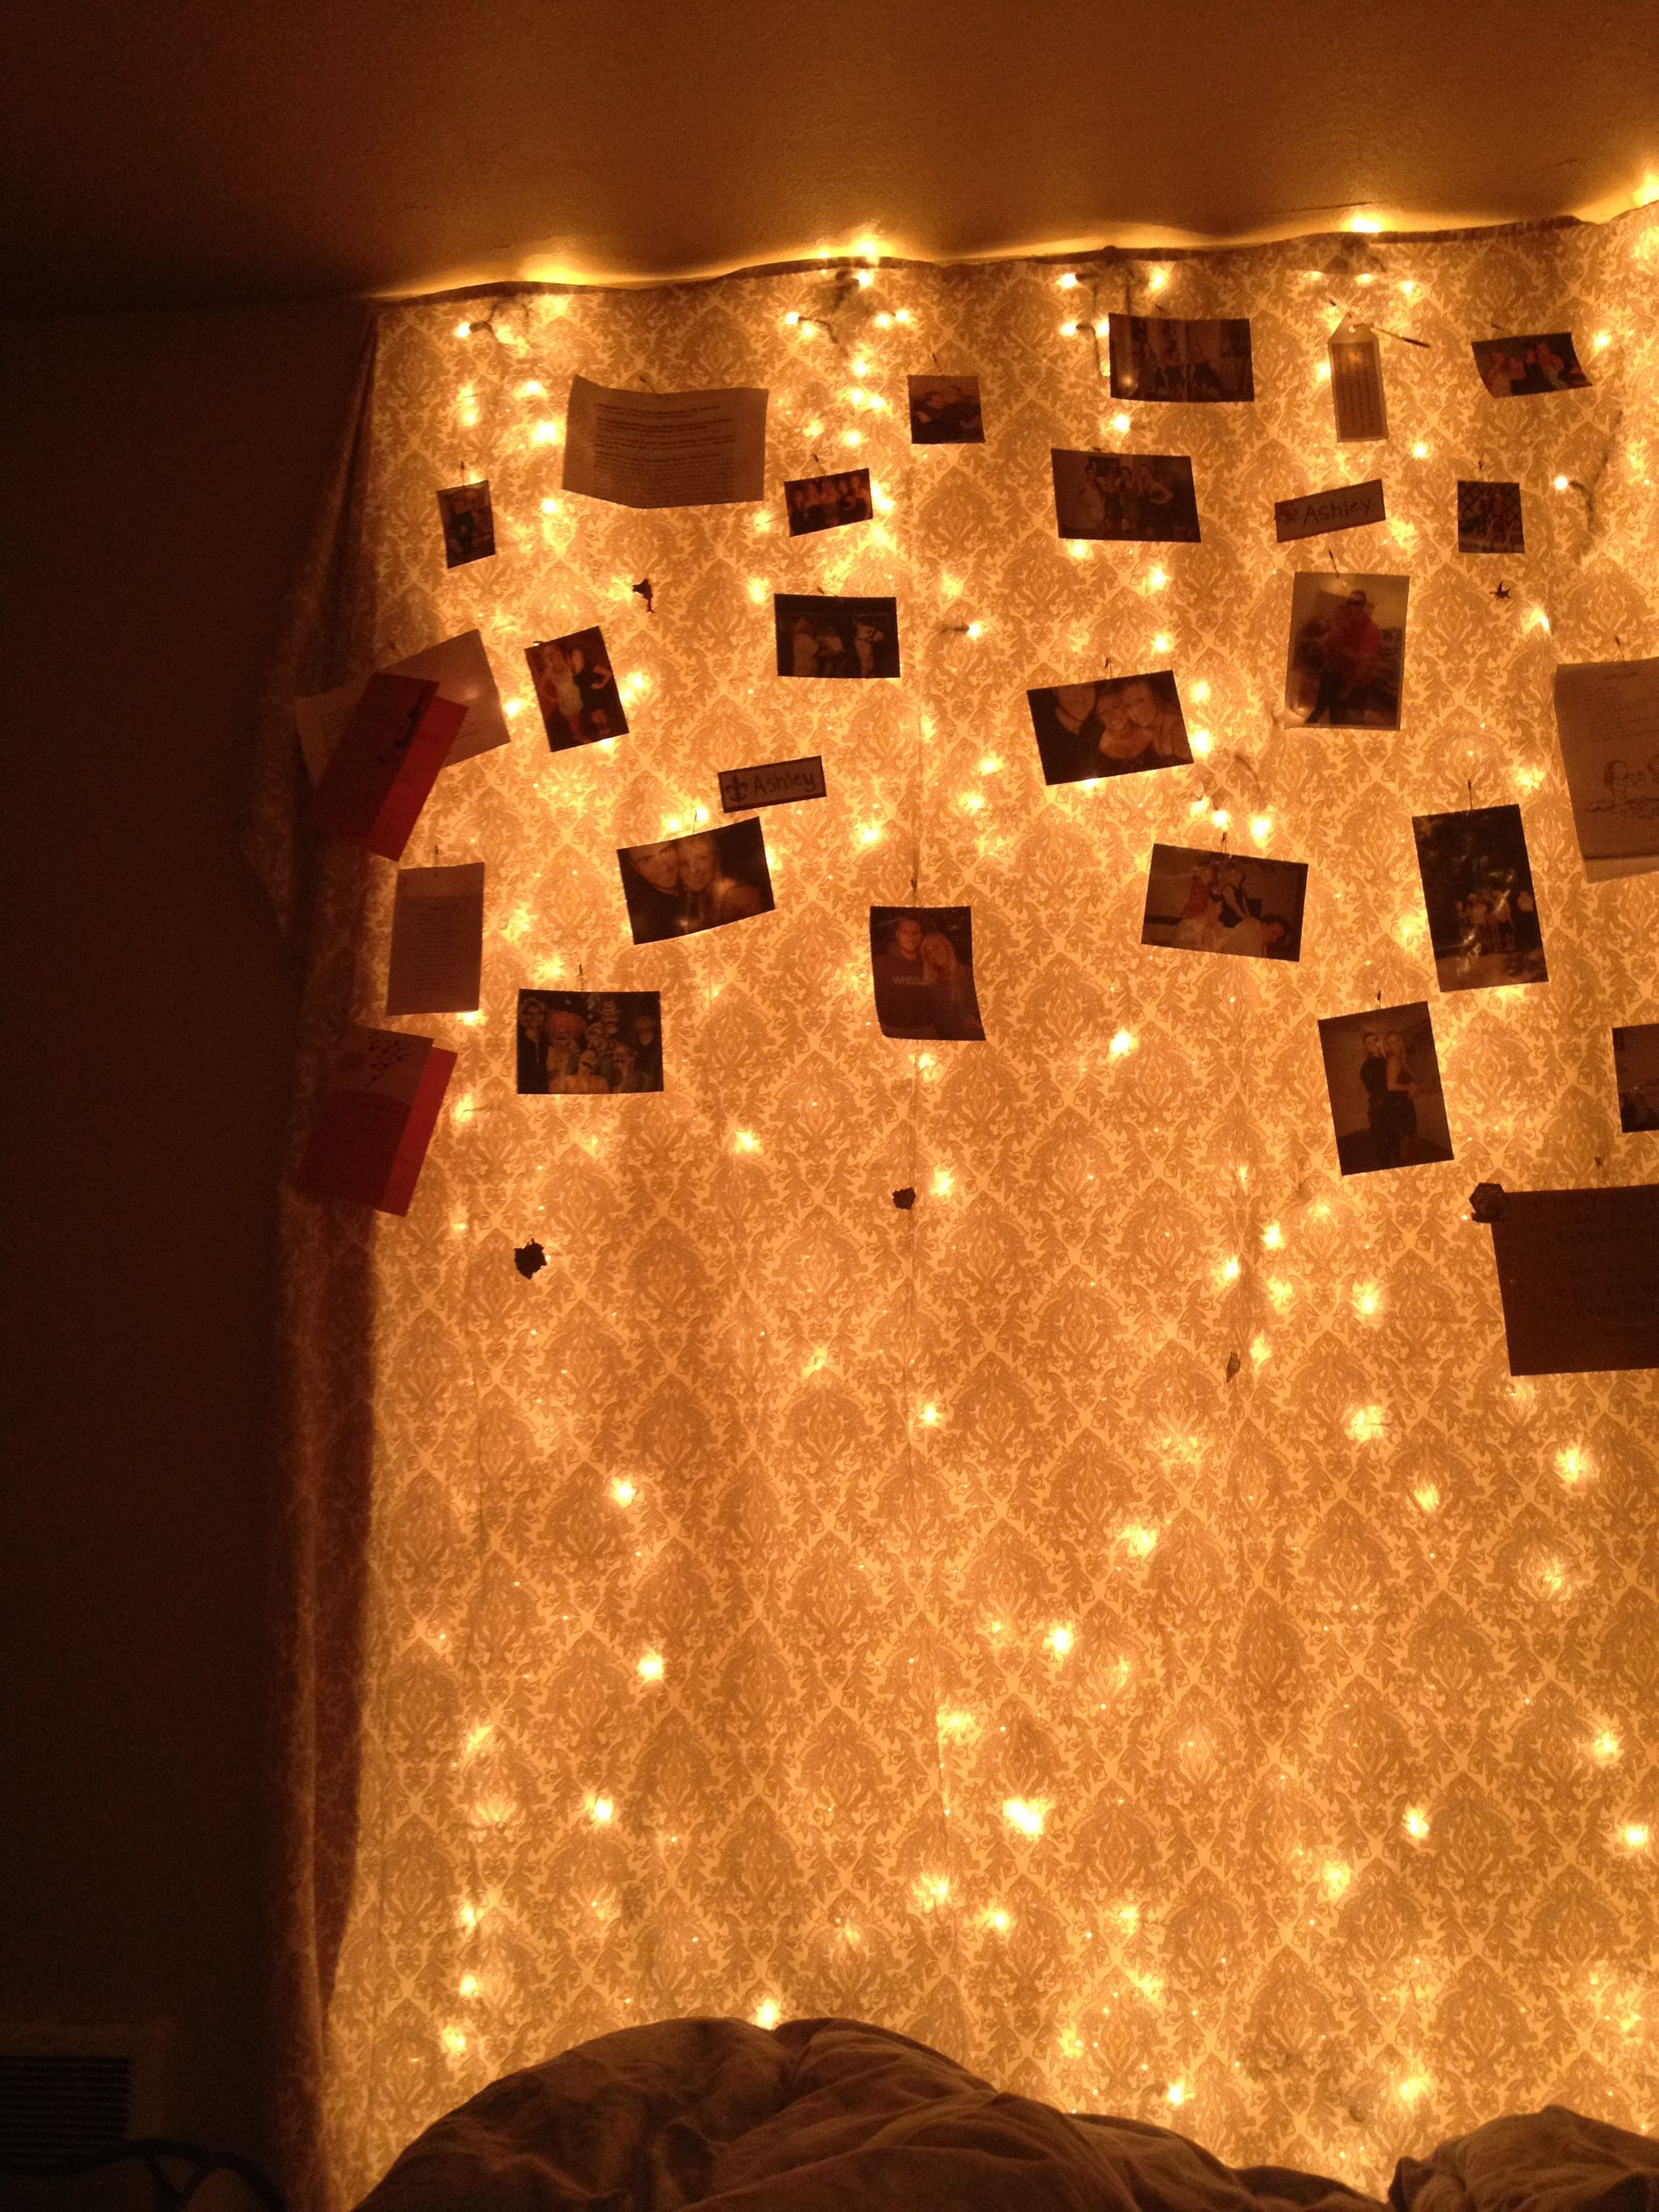 My Bedroom Wall Christmas Lights Covered In A Sheet Use